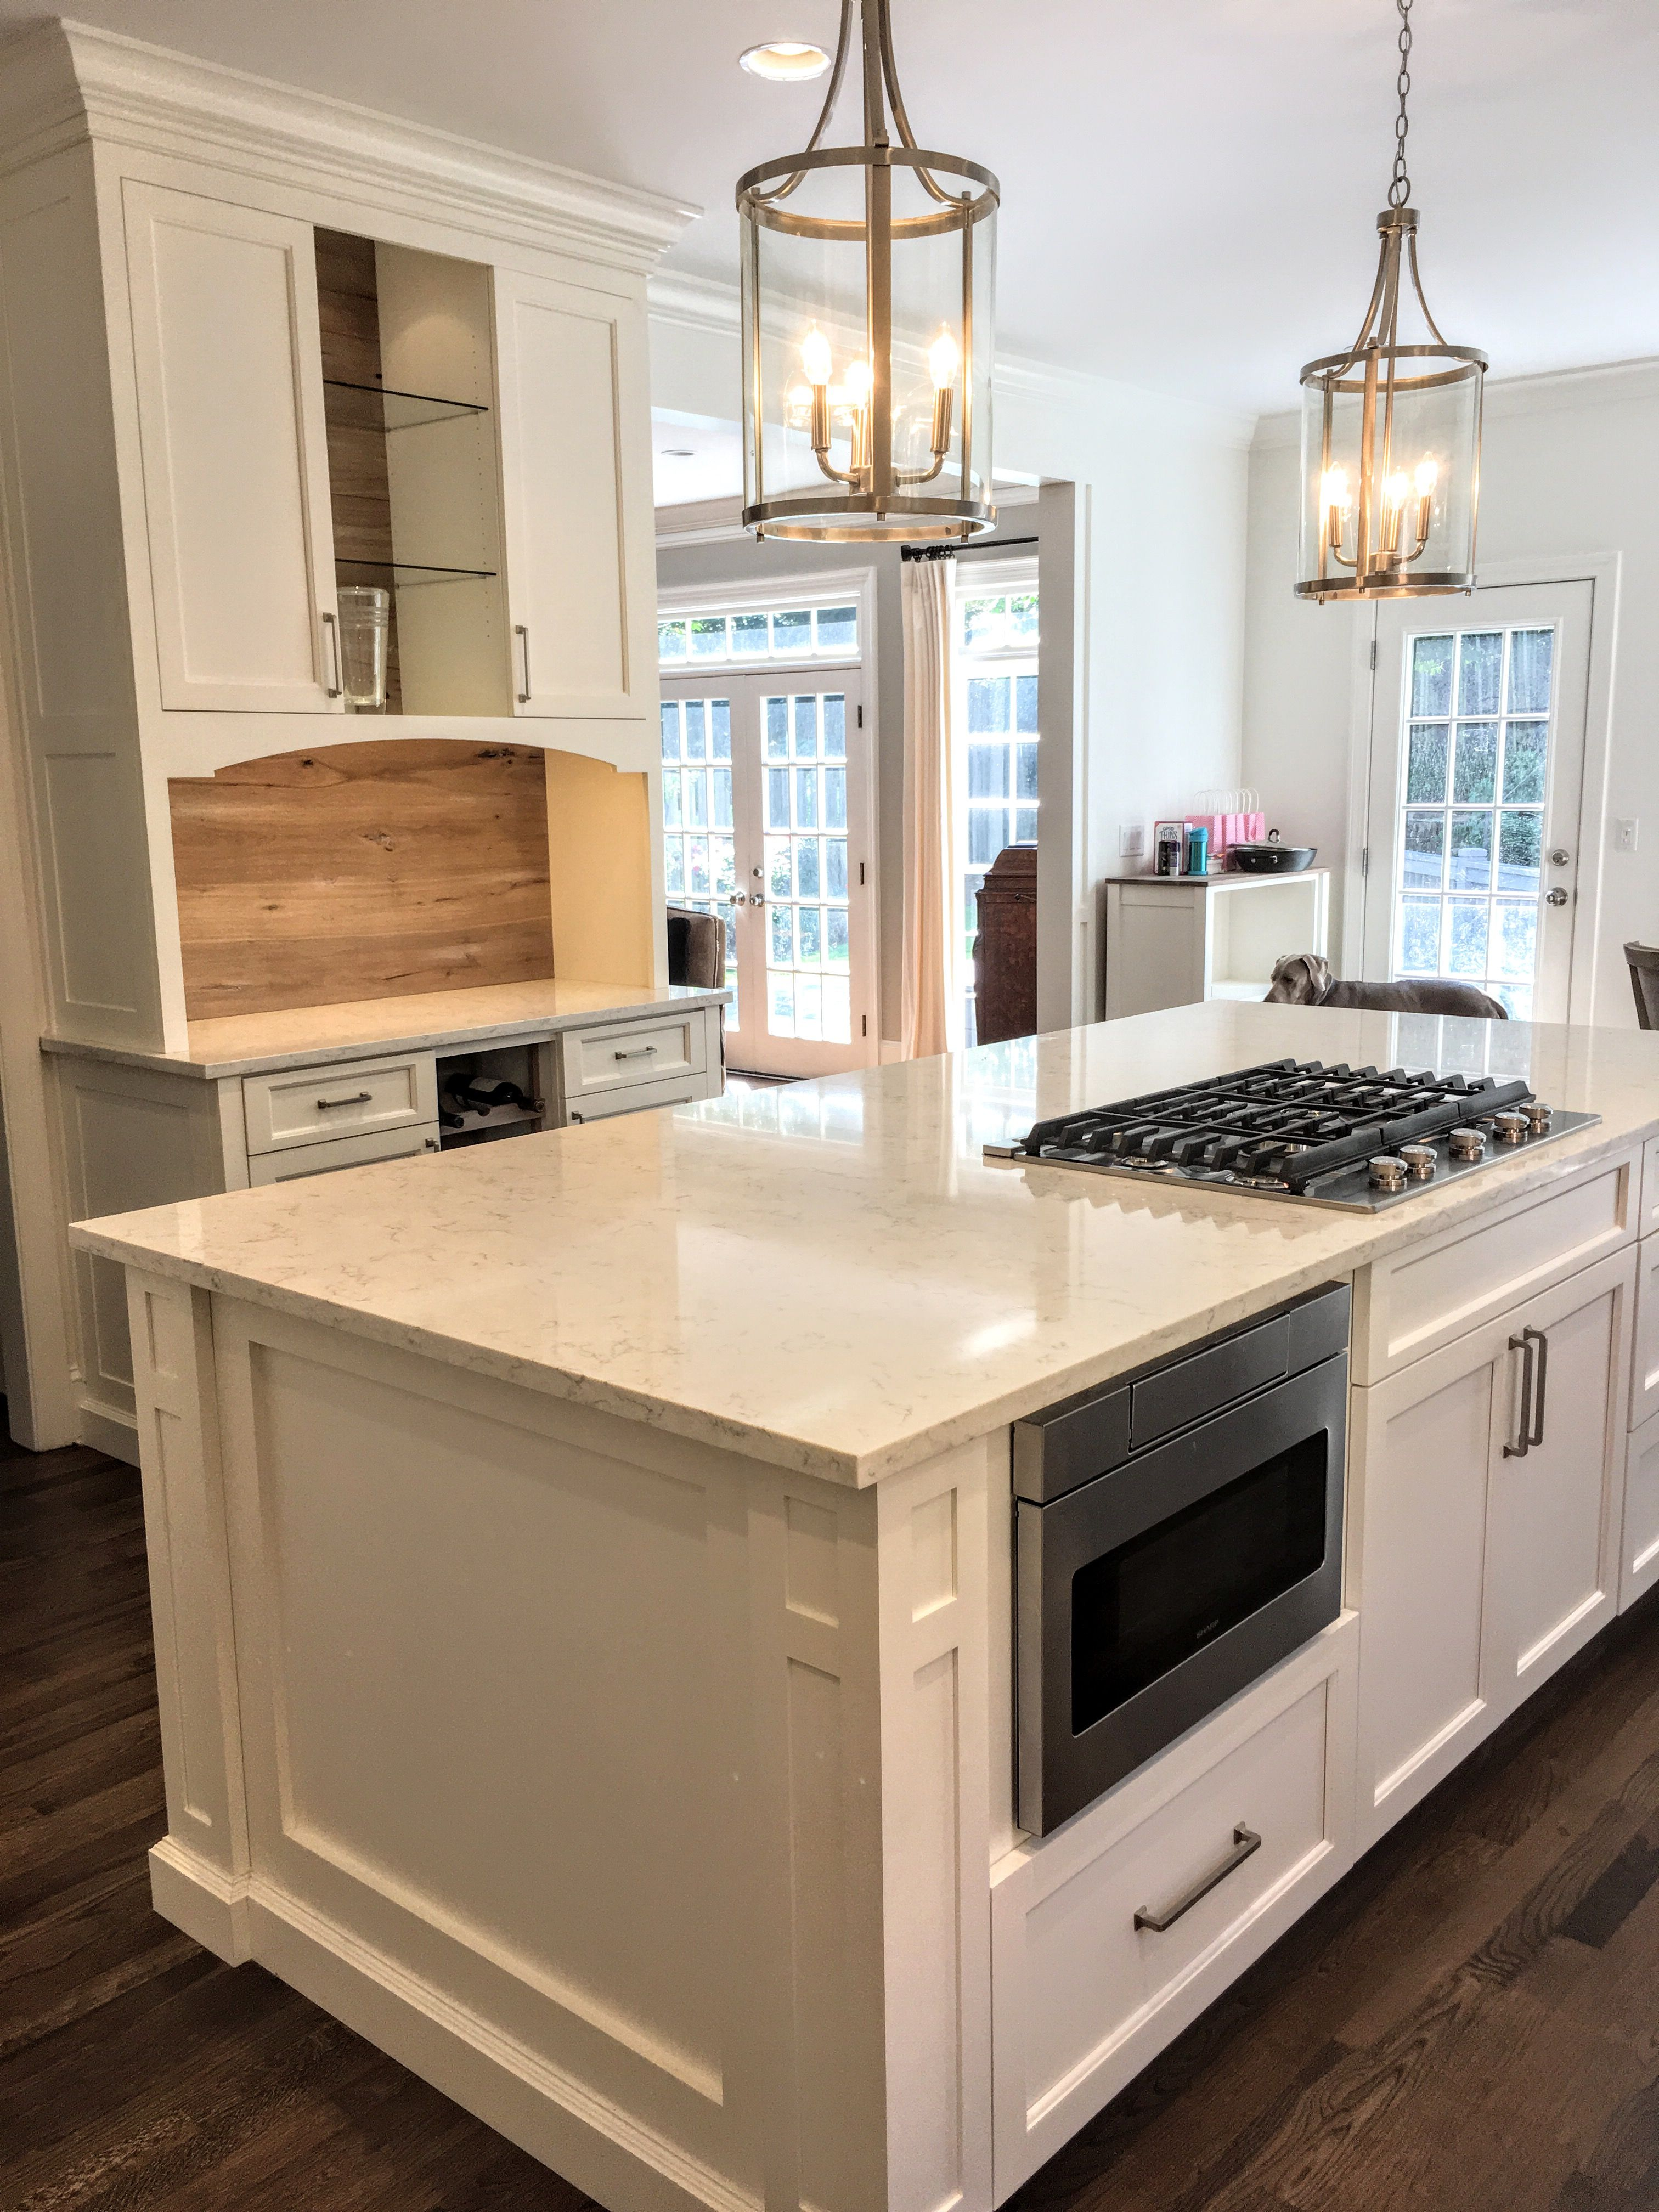 Finished Kitchen Shaker Doors On Full Overlay Cabinets Finished In Sherwin Williams G Kitchen Design Modern Kitchen Design Kitchen Design Modern Contemporary